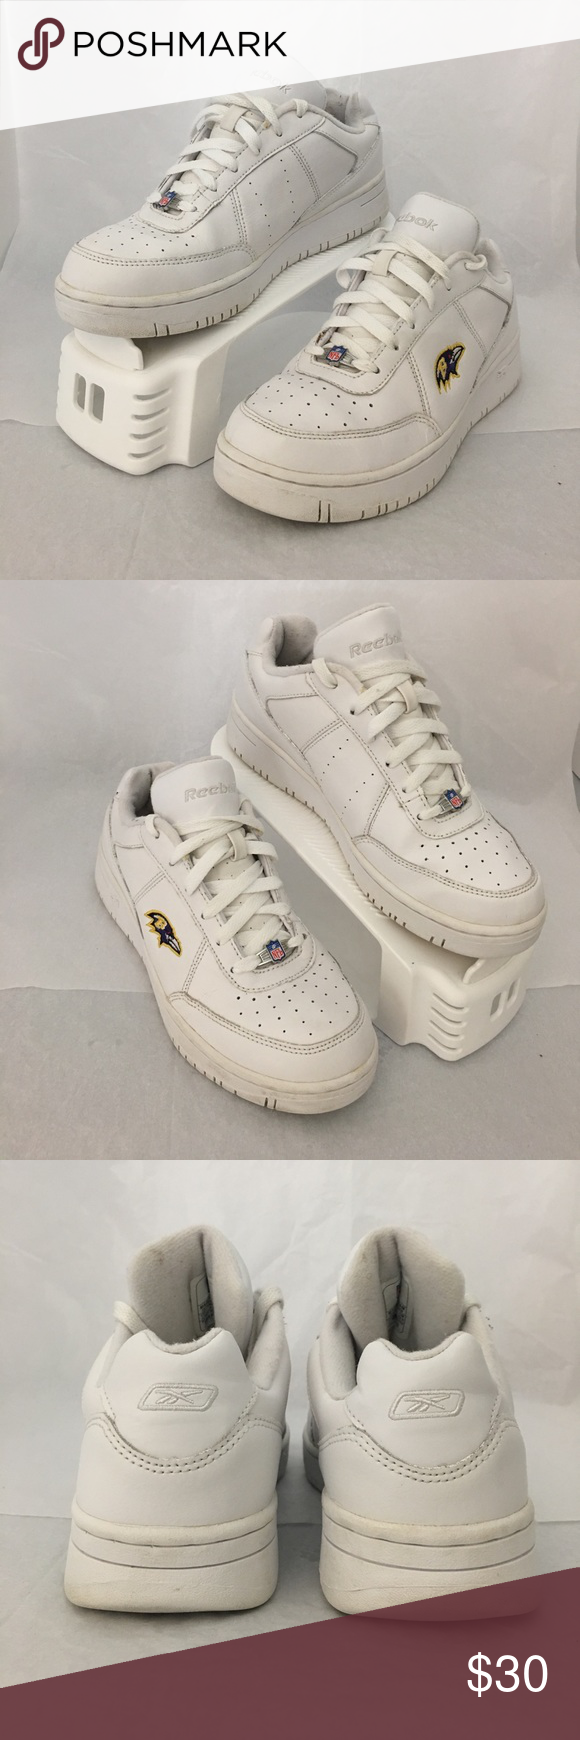 a481e6a32267 Reebok Reebok NFL Raven shoes in excellent condition. Fresh out of the  Washer. Smoke and pet free house. Sizes  4.5 will fit youth and men s.